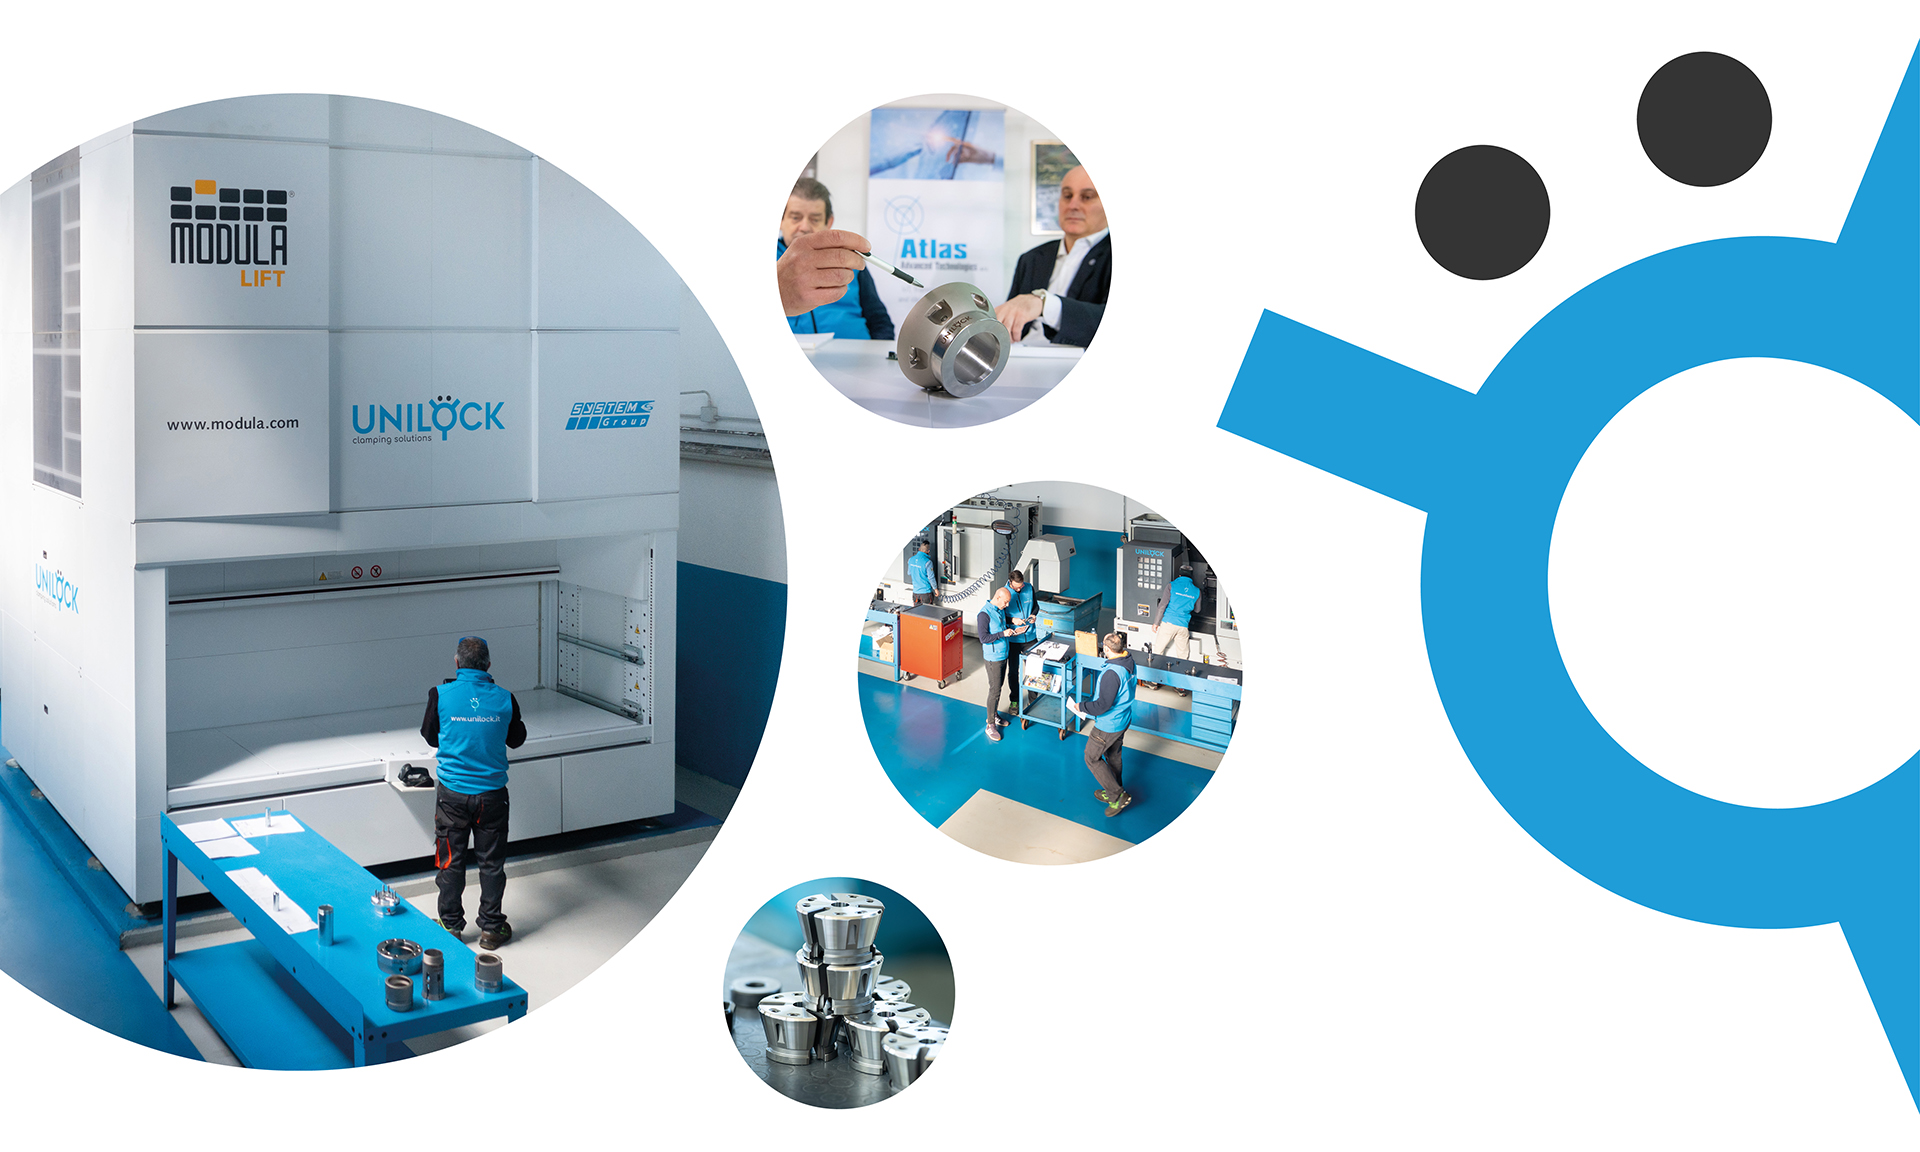 Unilock - Clamping Solutions Home Page